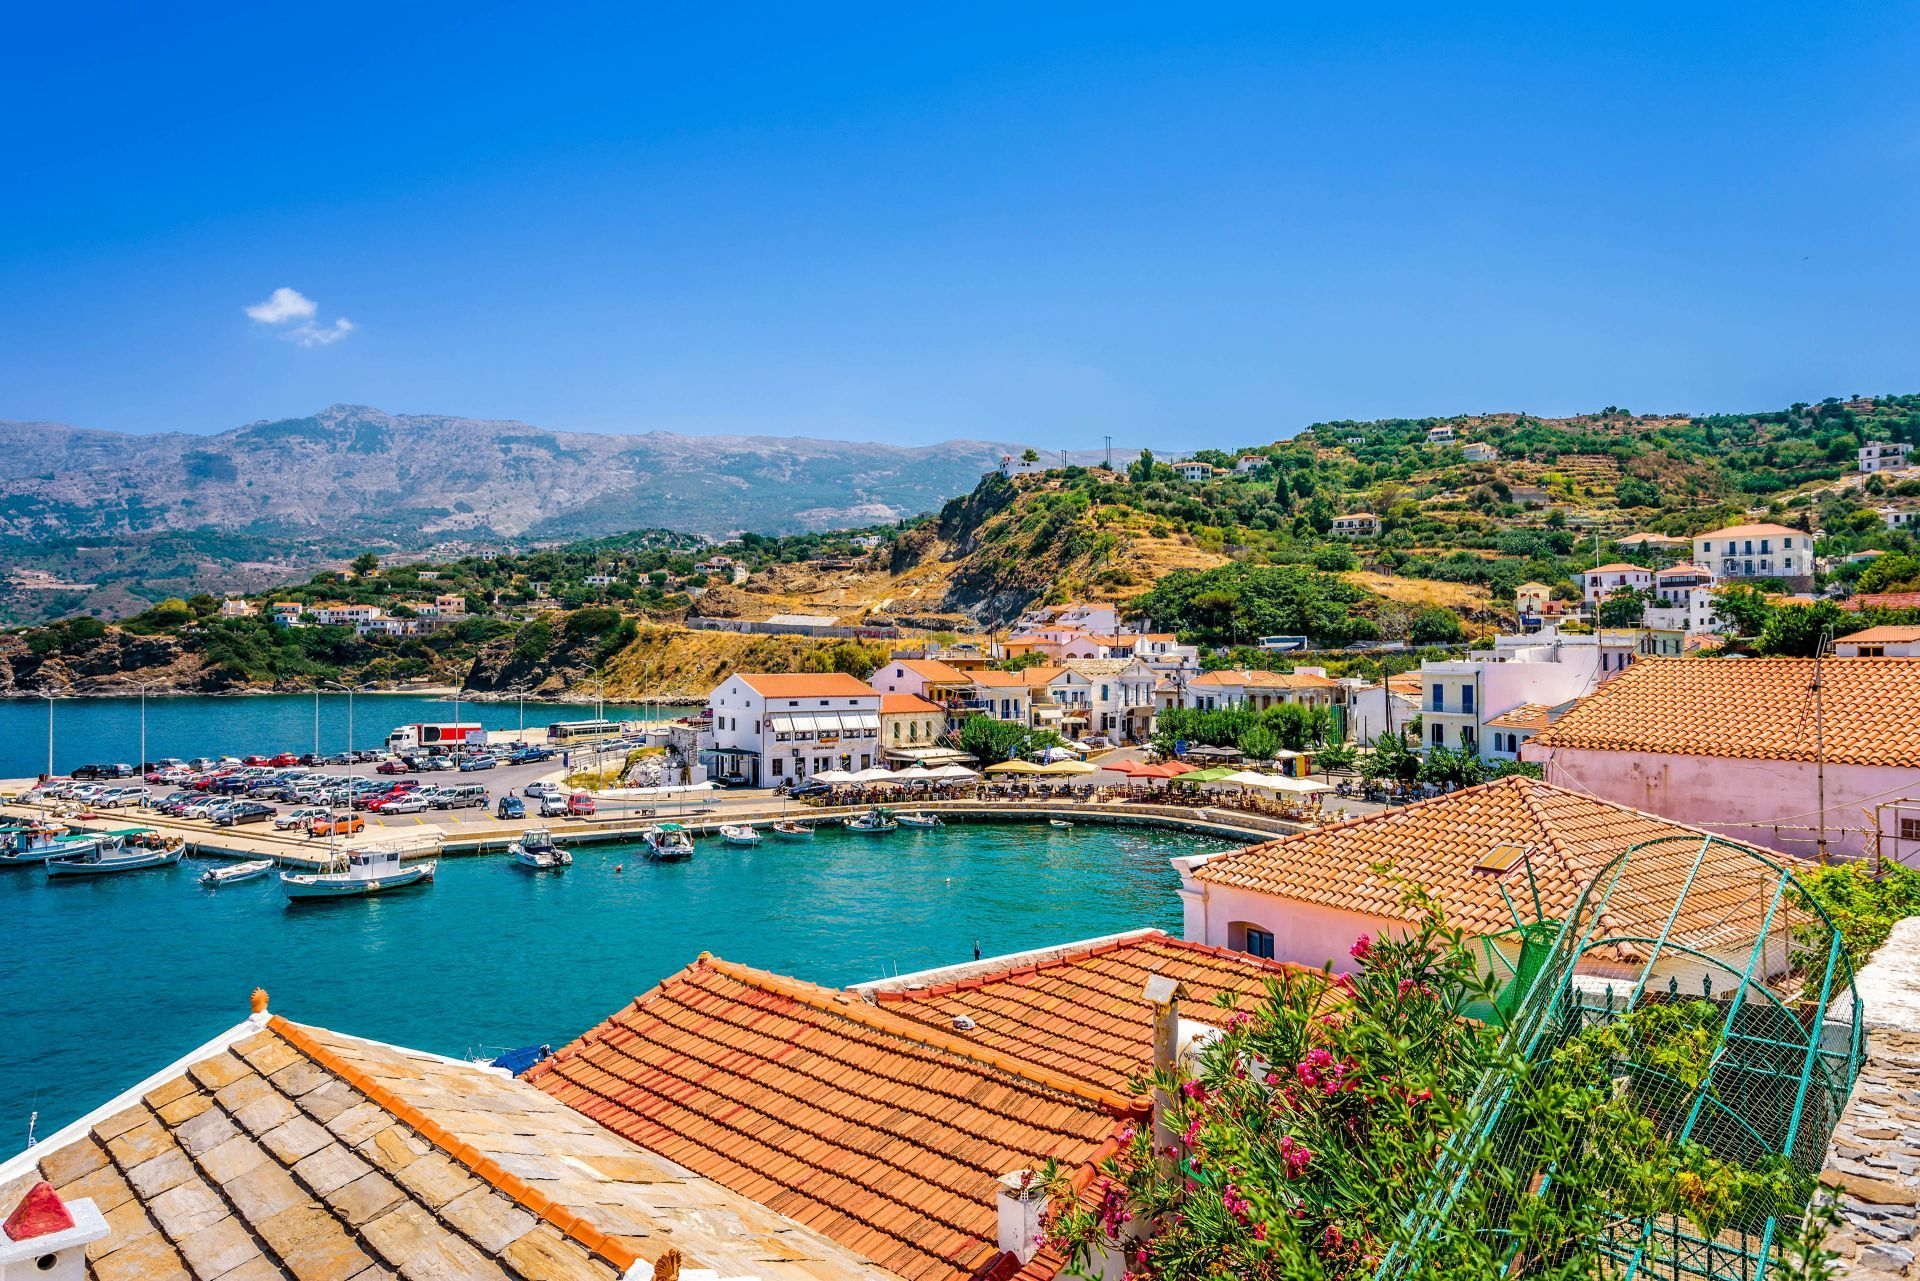 Accommodation and hotels in the Eastern Aegean